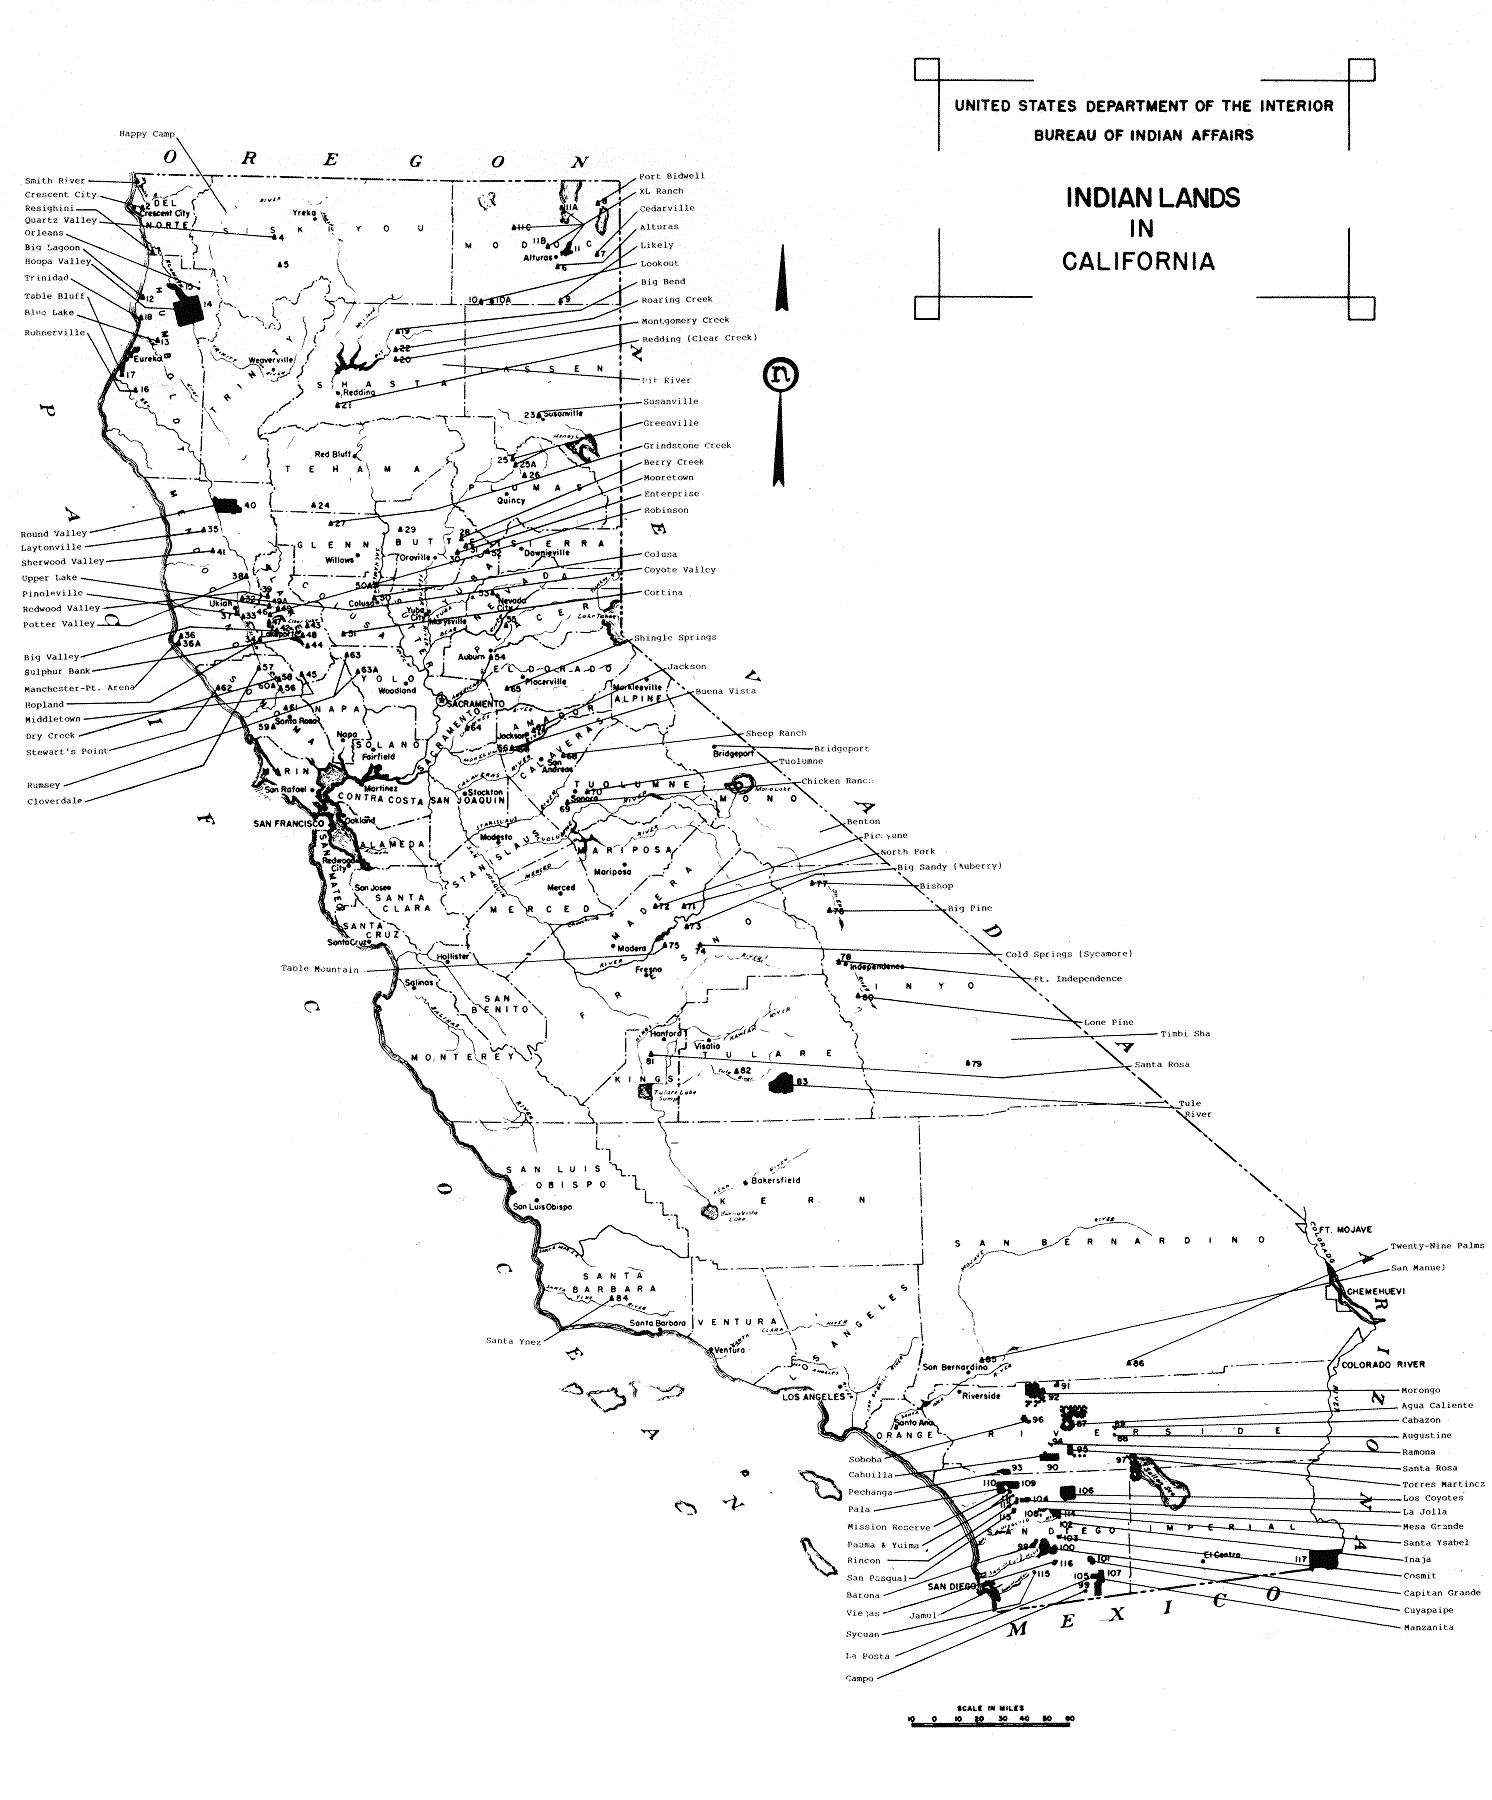 Indian New Of Maps California Map Black And White - Klipy - California Map Black And White